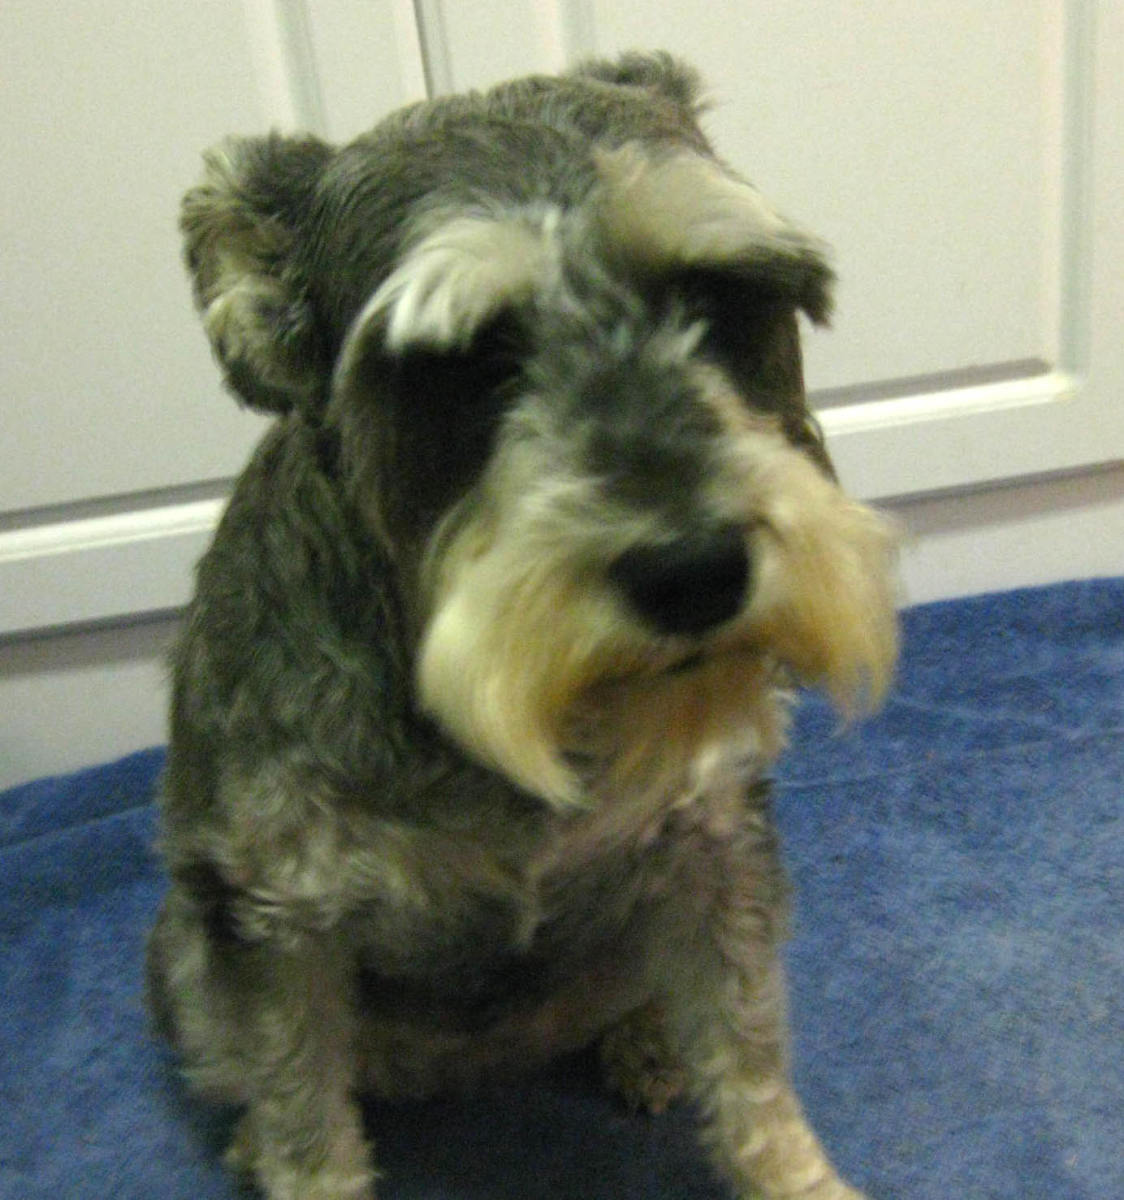 Here's my girl with her short summer haircut, but she still has that distinctive schnauzer look.